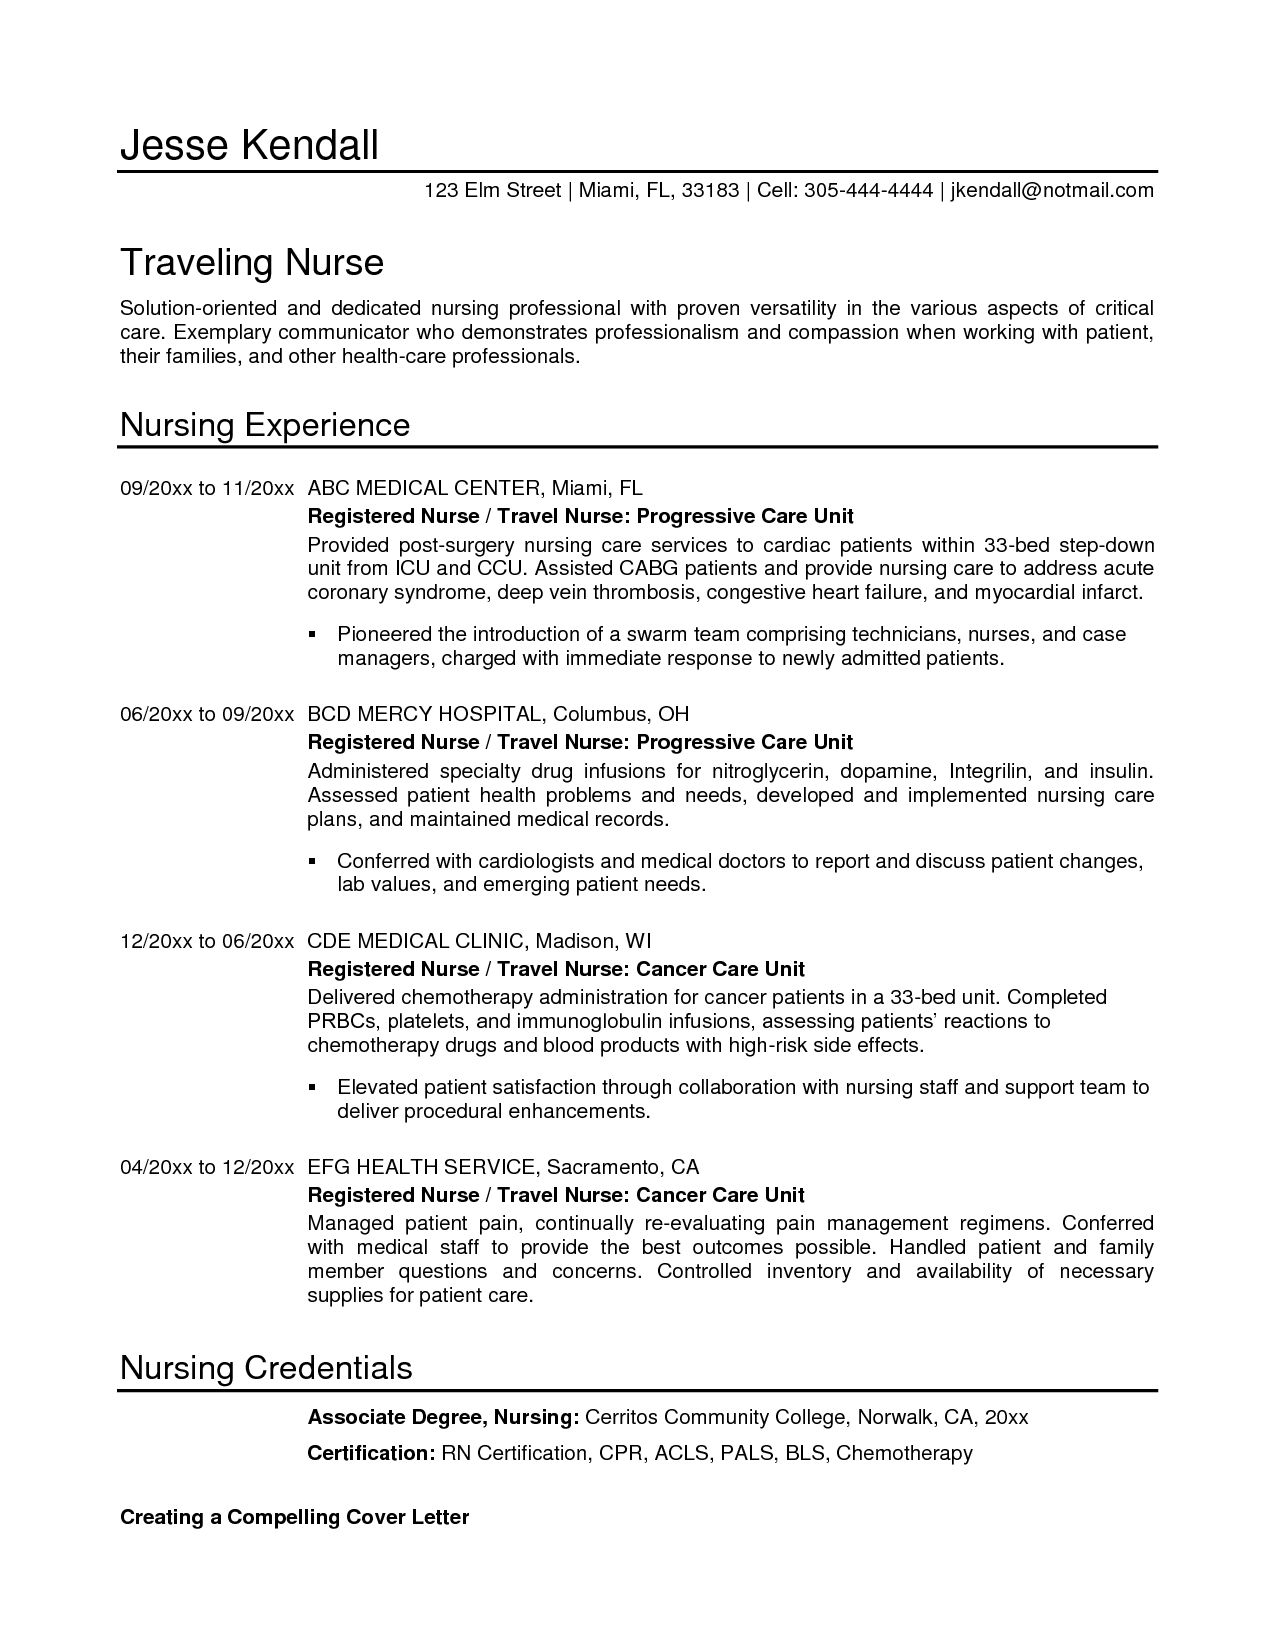 International Nurse Cover Letter Lead Trainer Sample Resume